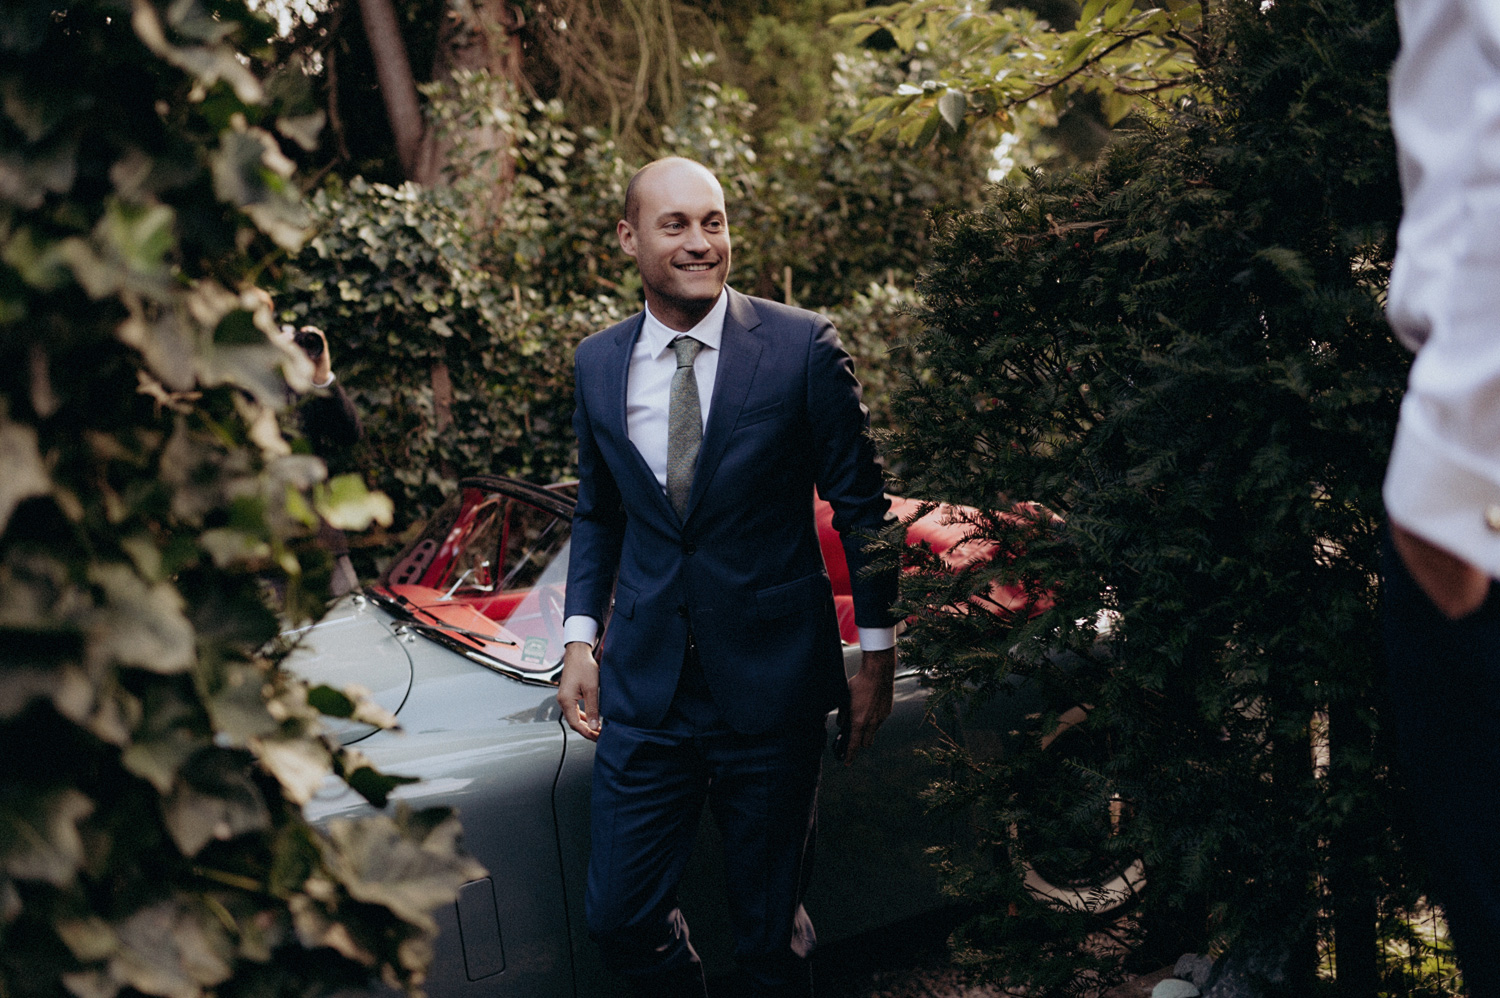 Groom arriving at parents house of bride